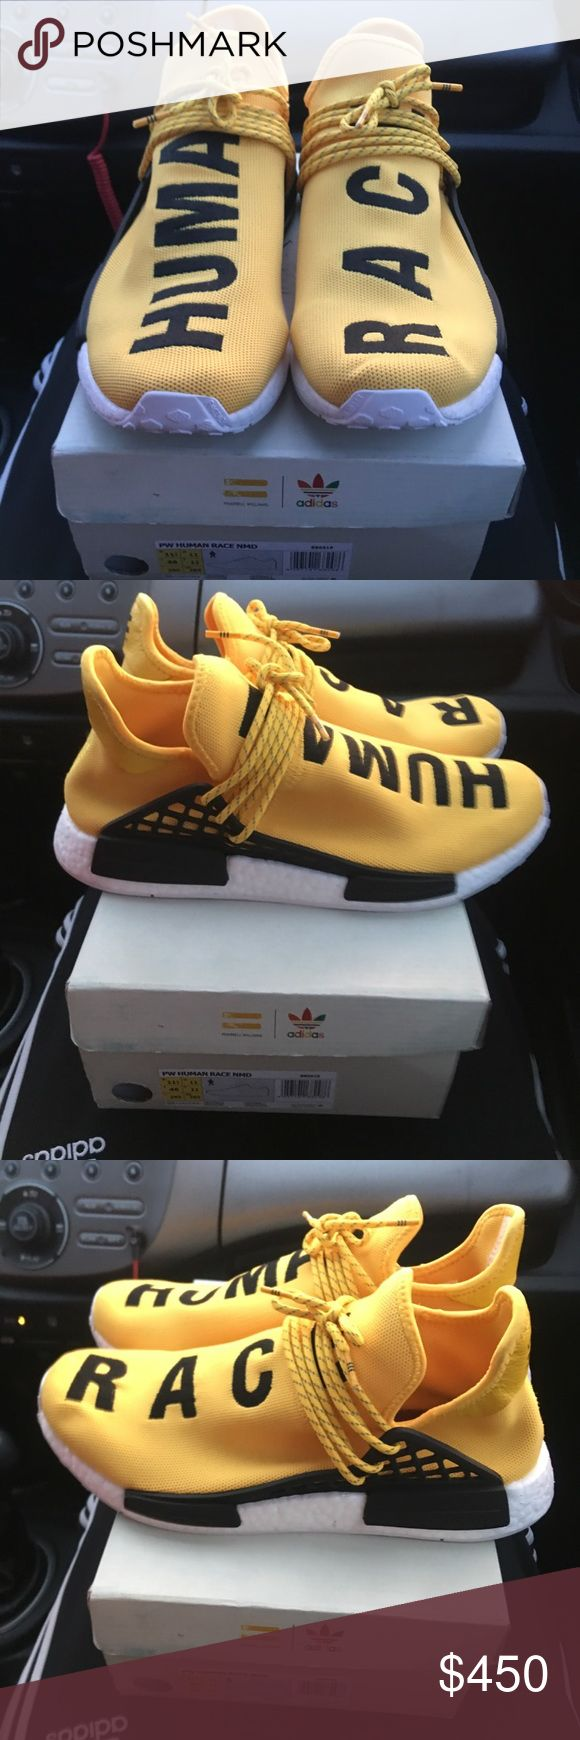 Pharrell Williams x adidas NMD human race Worn 2x sz 10 comes with box. Need money for a new car so price is negotiable! Adidas Shoes Sneakers